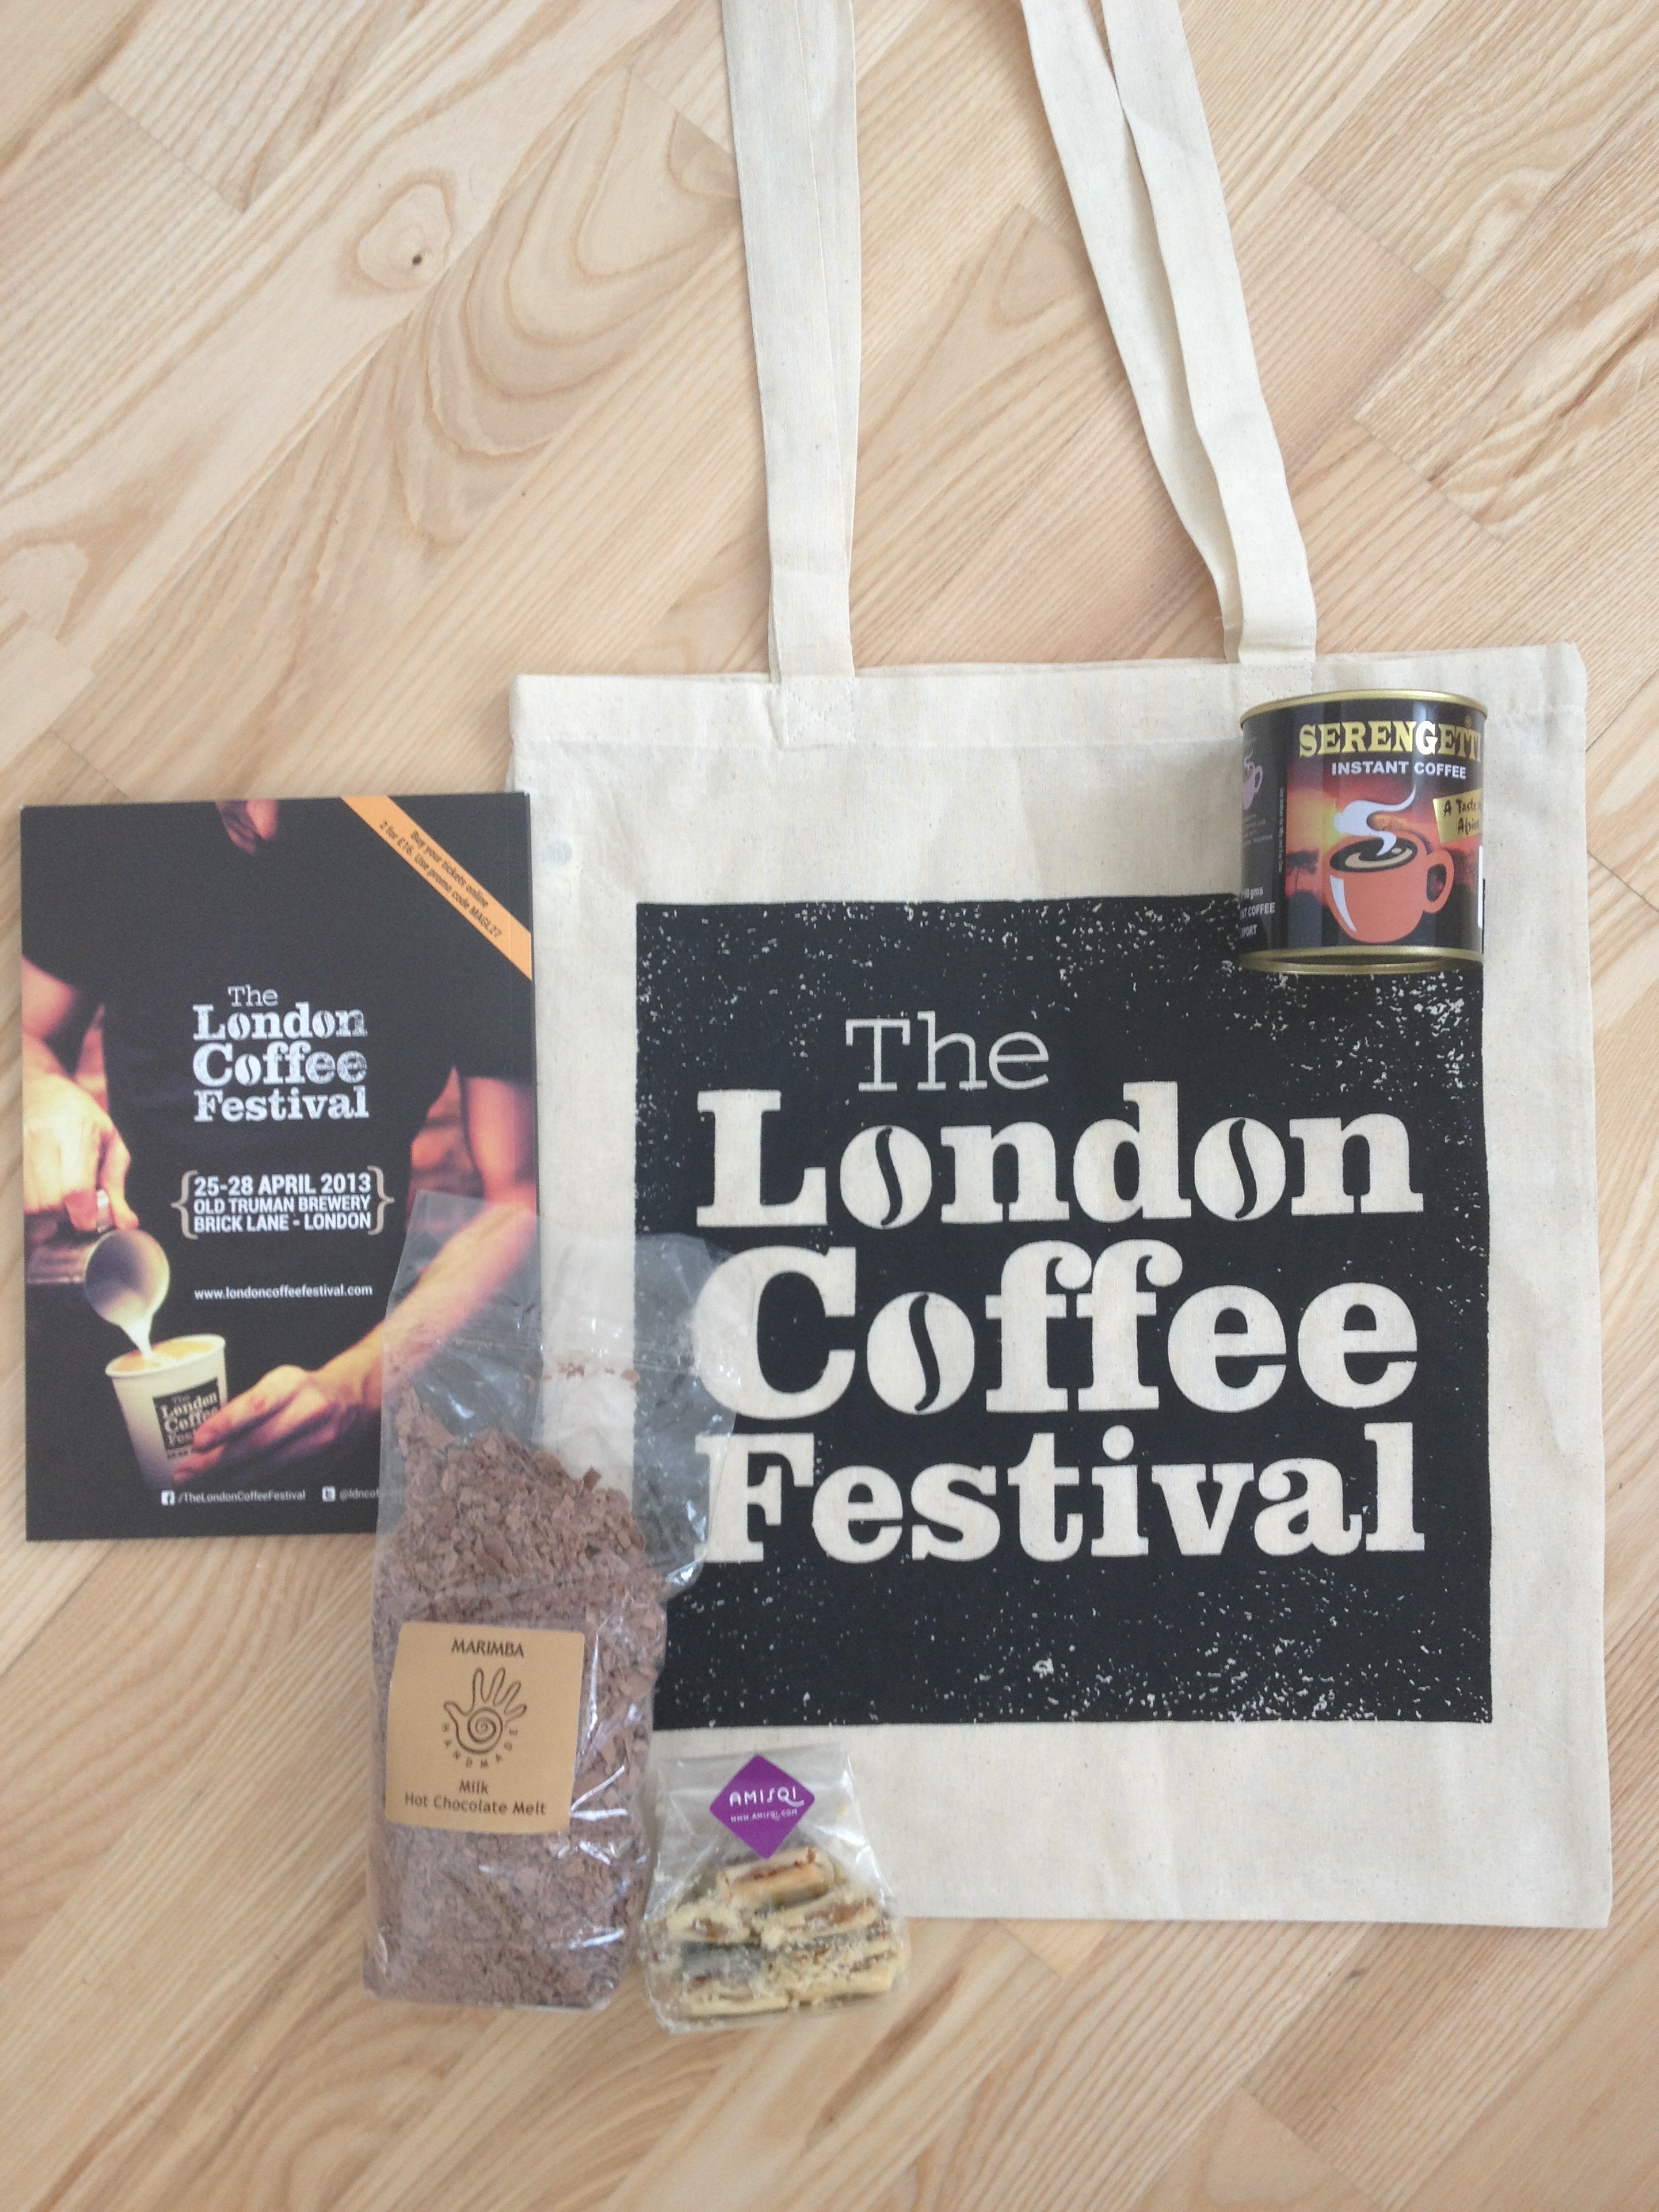 Treats from the London Coffee Festival - Second Floor Flat